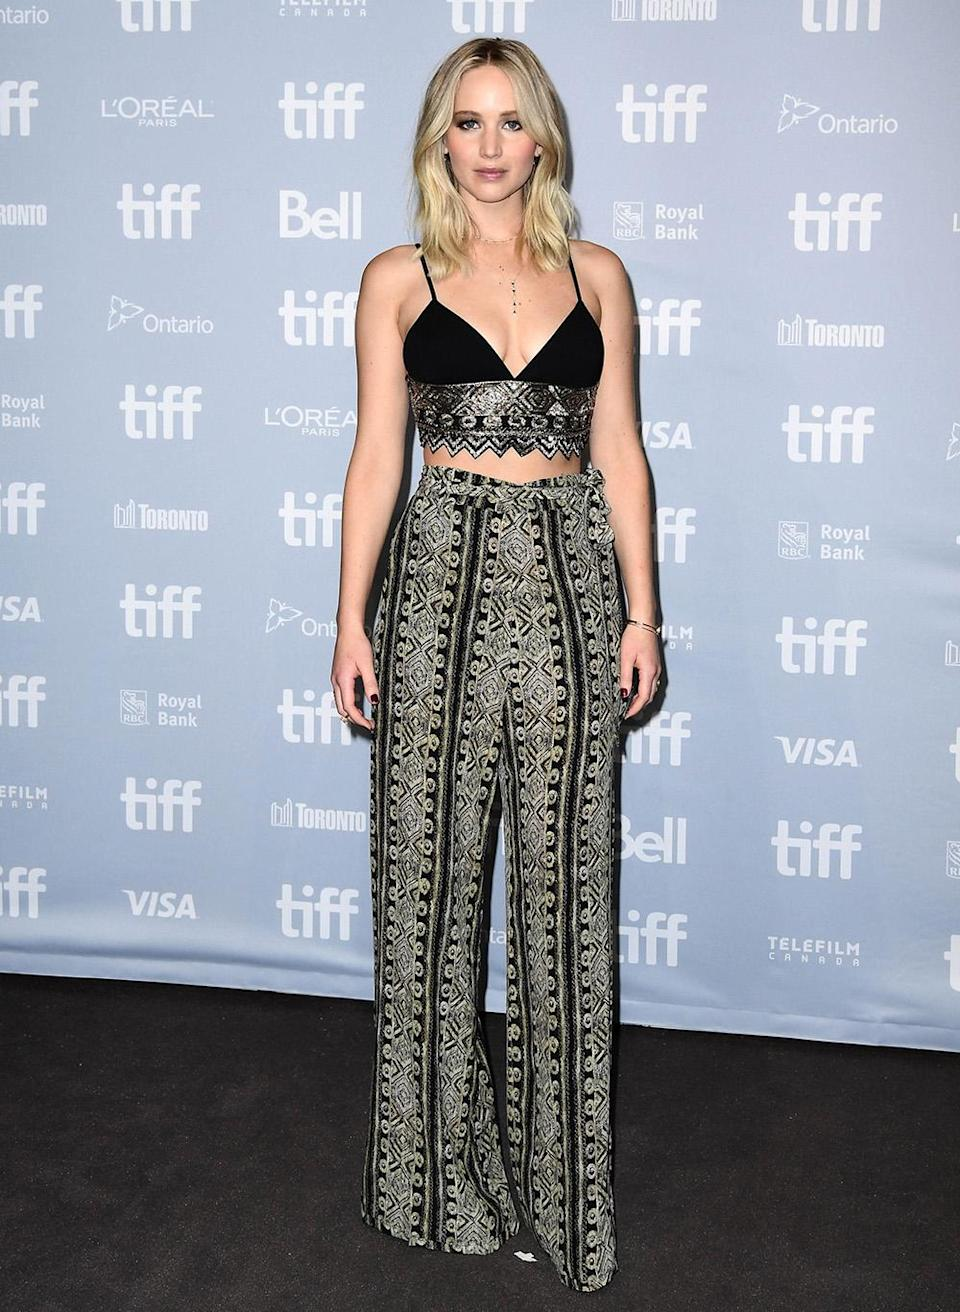 The actress wore Sally LaPointe to an earlier TIFF premiere. (Photo by Emma McIntyre/Getty Images for Paramount Pictures)